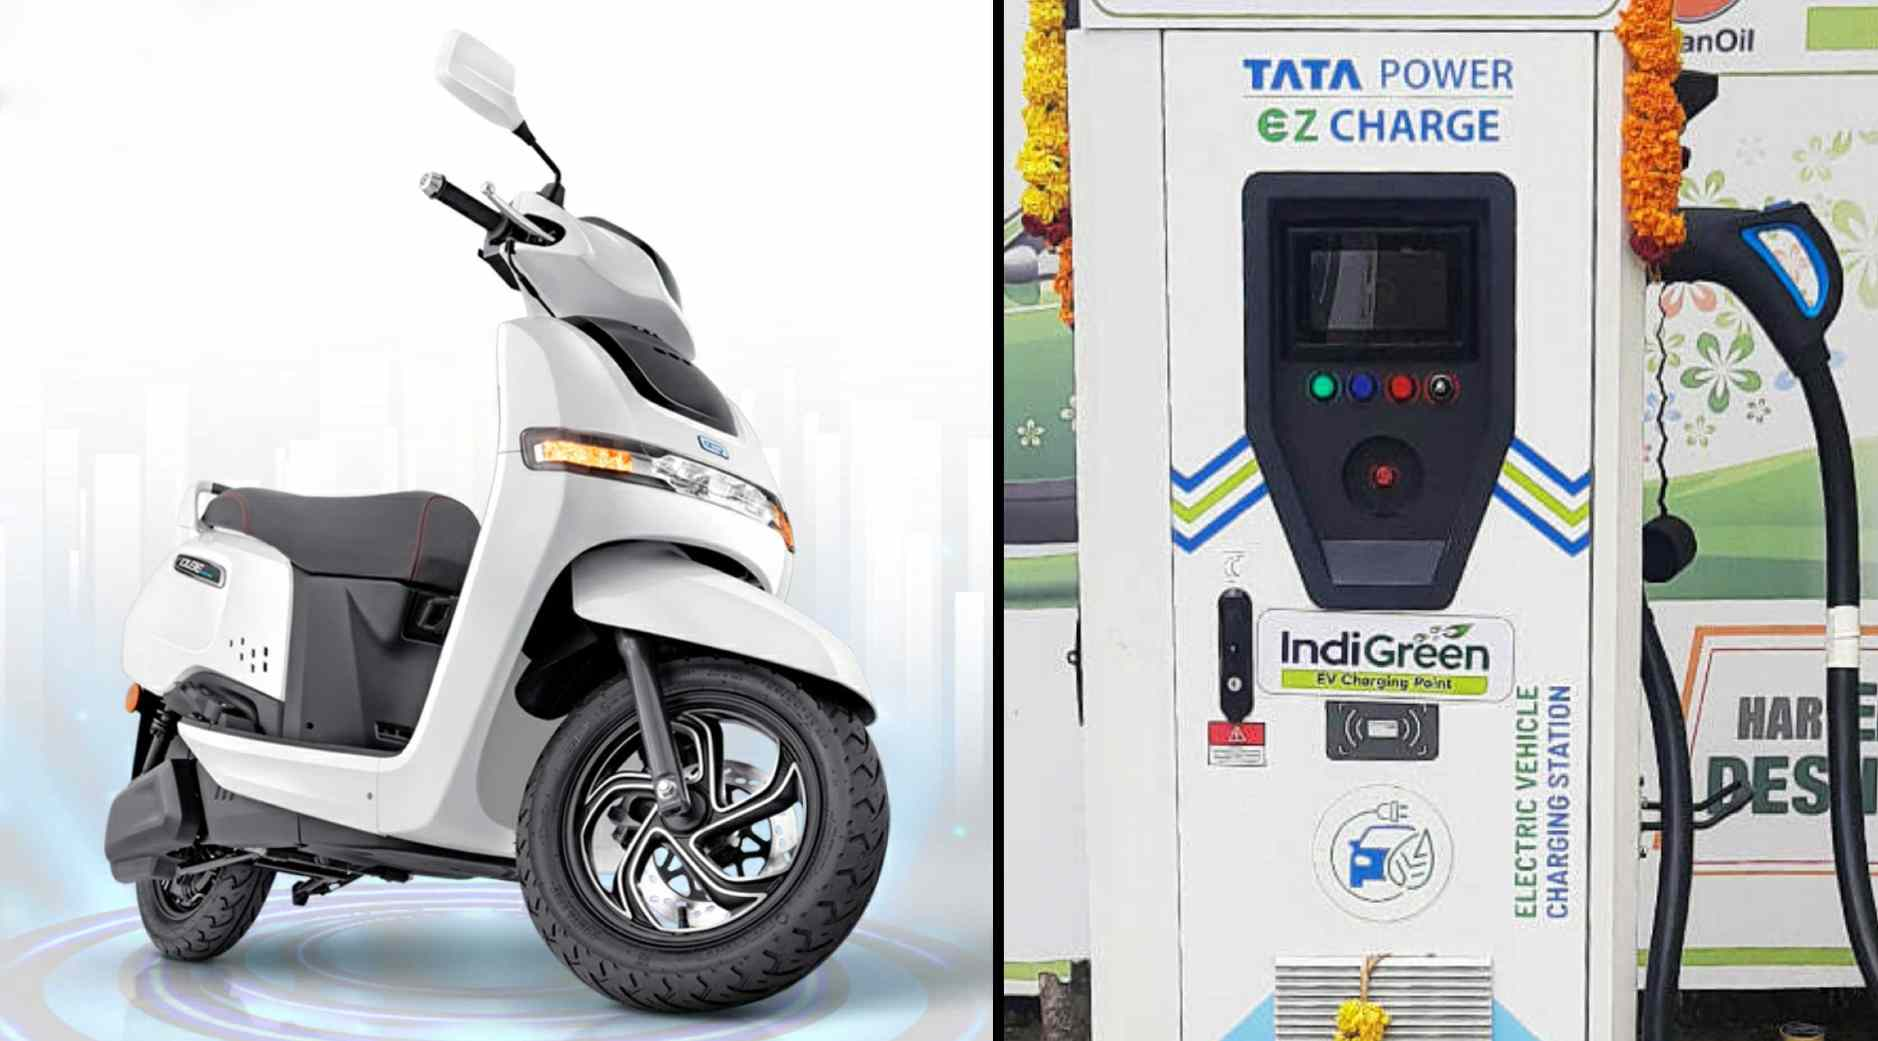 TVS iQube owners will be able to use Tata Power charging stations and pay for every charging session via a smartphone app. Image: TVS and Tata Power